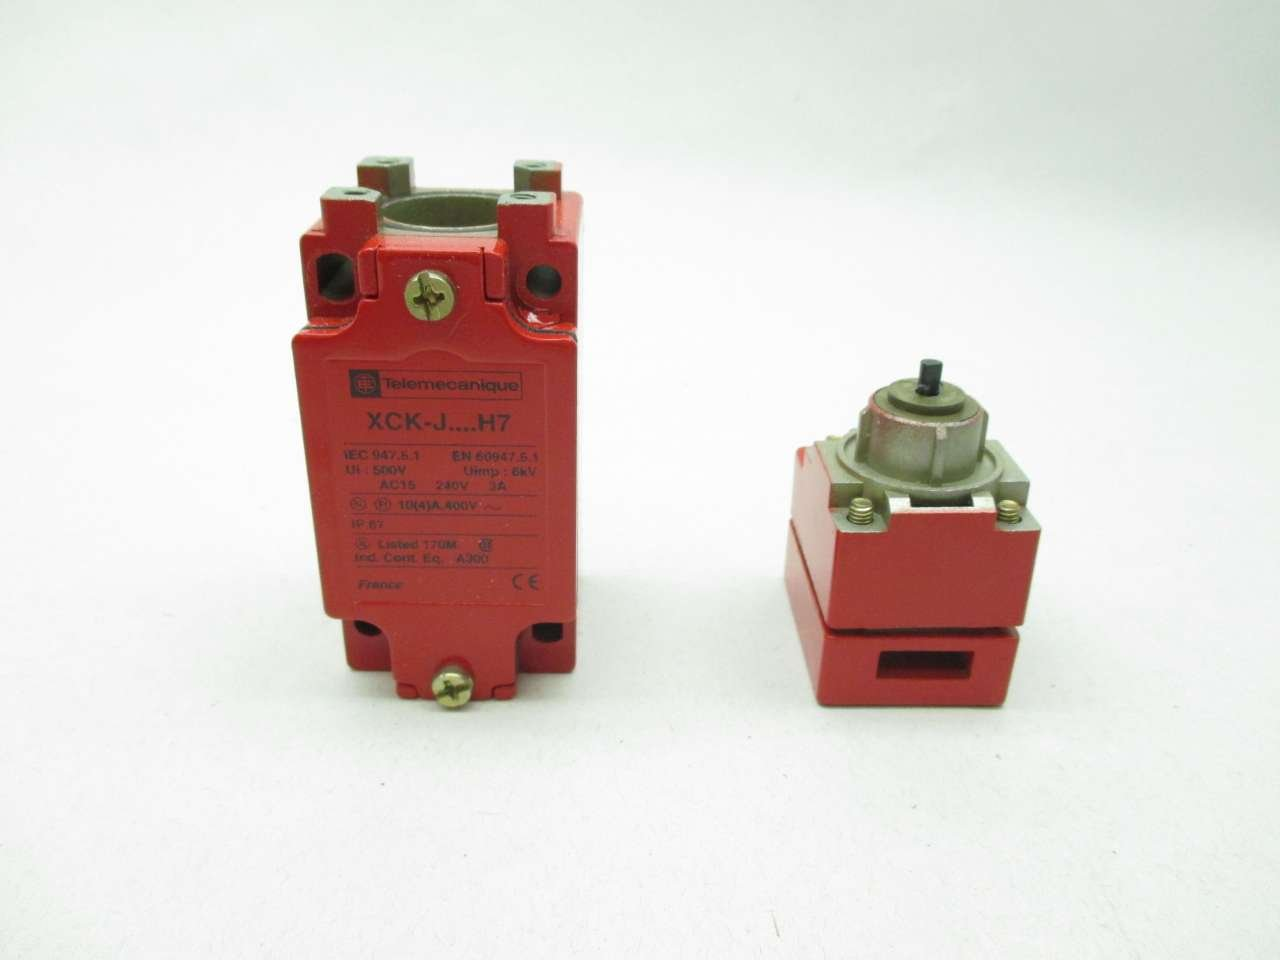 Telemecanique Xckj5970h7 Limit Switch 10a 300vac Fire Inc Restaurant System Parts Ansulstyle Dpdt Microswitch Industrial Scientific